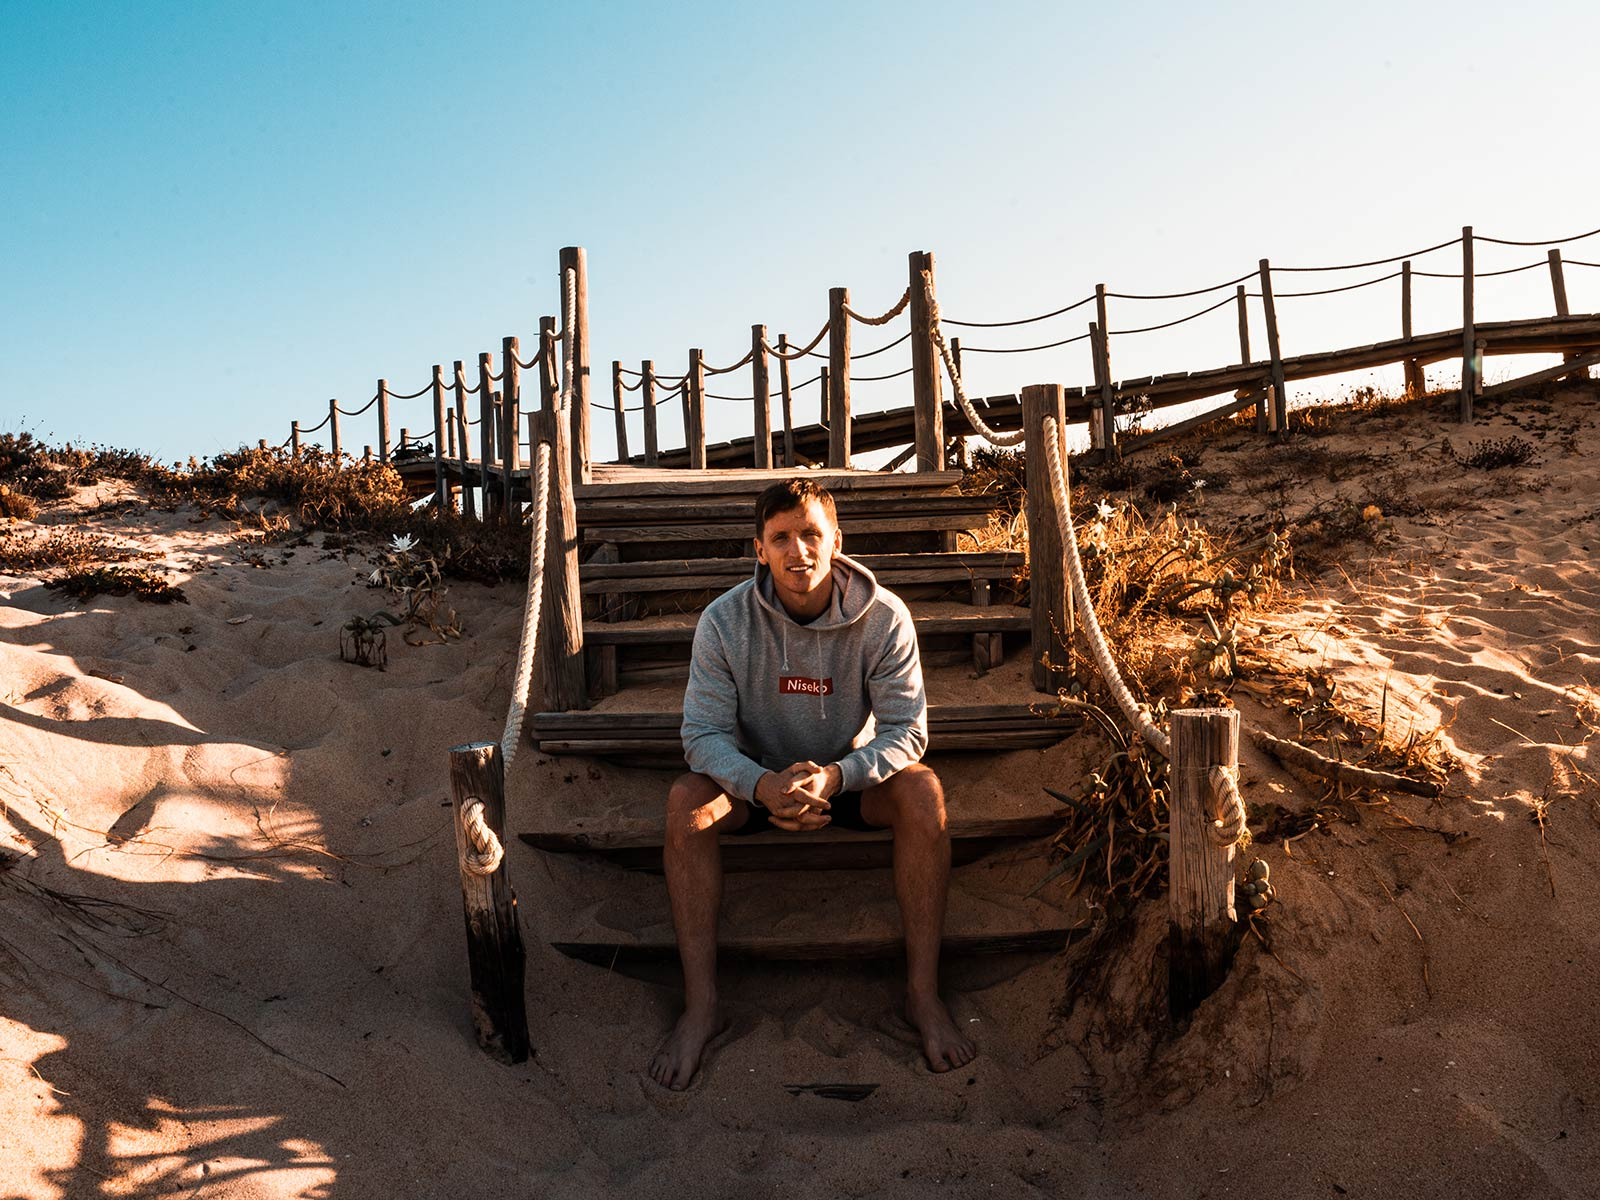 PORTRAIT IMAGE OF DAVID SIMPSON SITTING ON STEPS AT BEACH IN PORTUGAL